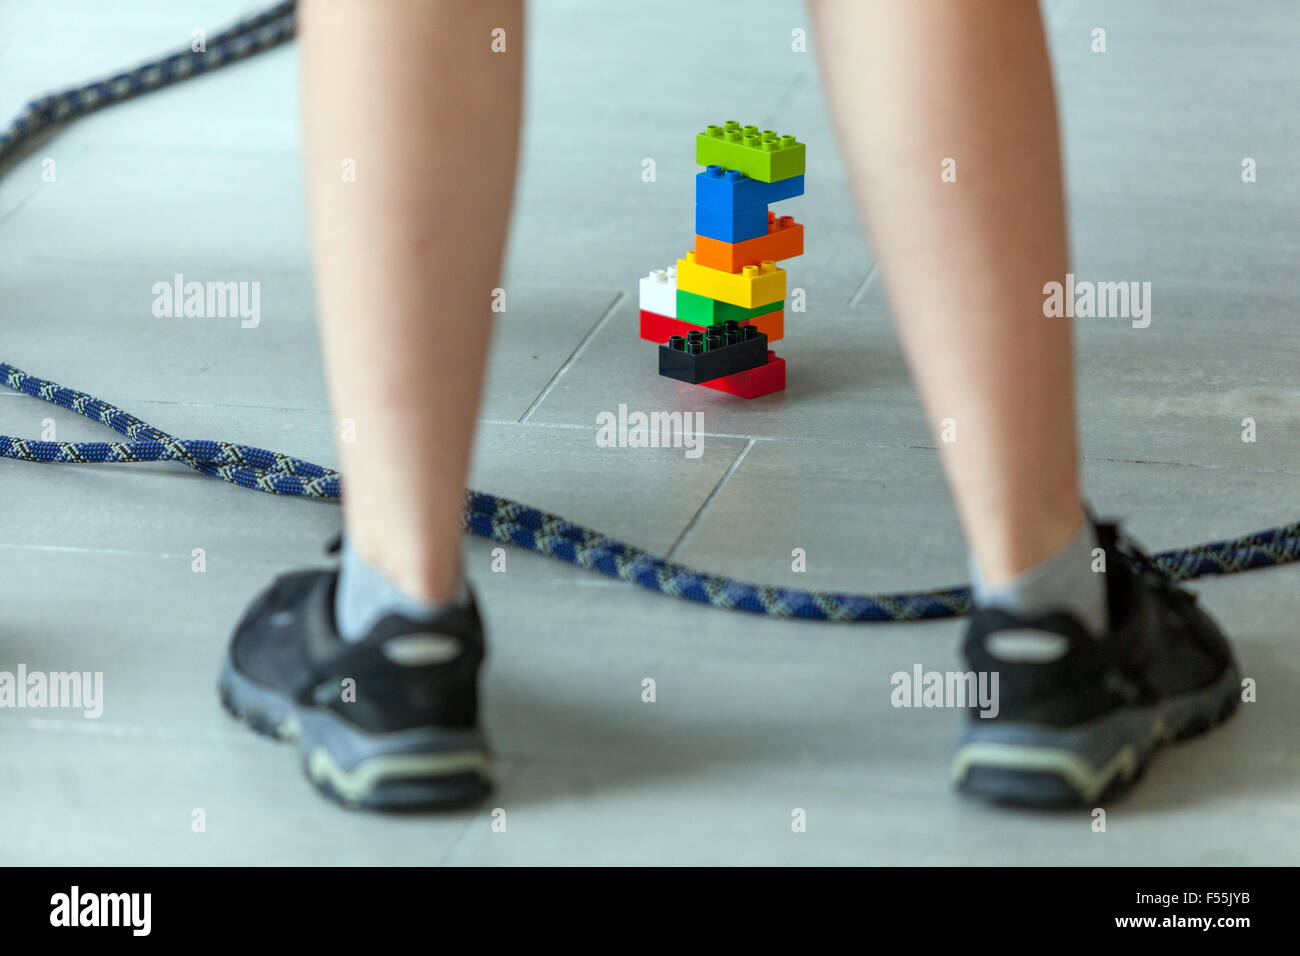 Lego bricks, Plastic cubes in the hands of a child's game that develops creativity and imagination Stock Photo